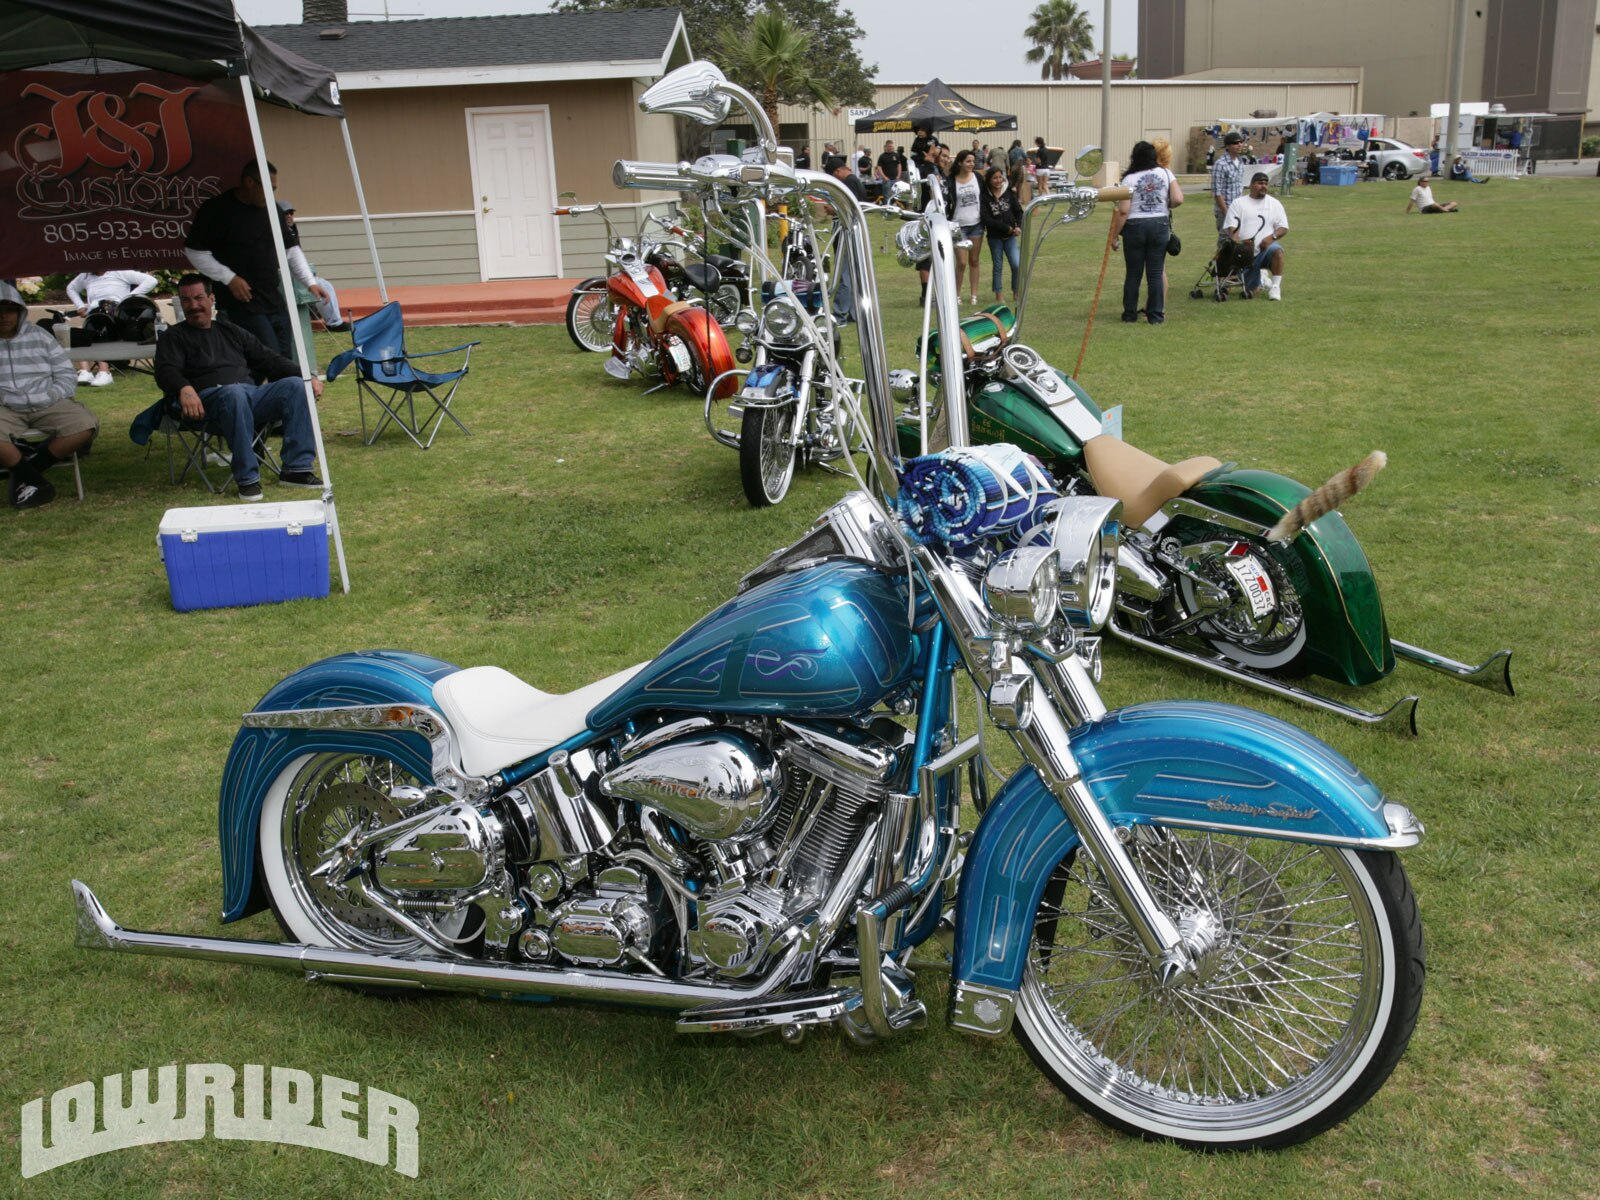 Maxresdefault further Harley Davidson Heritage Softail Seat moreover Maxresdefault further Harley Davidson Flstn Heritage Softail Nostalgia Fender moreover Lrmp O California Car Cycle Super Show Heritage Softail. on custom heritage softail lowrider